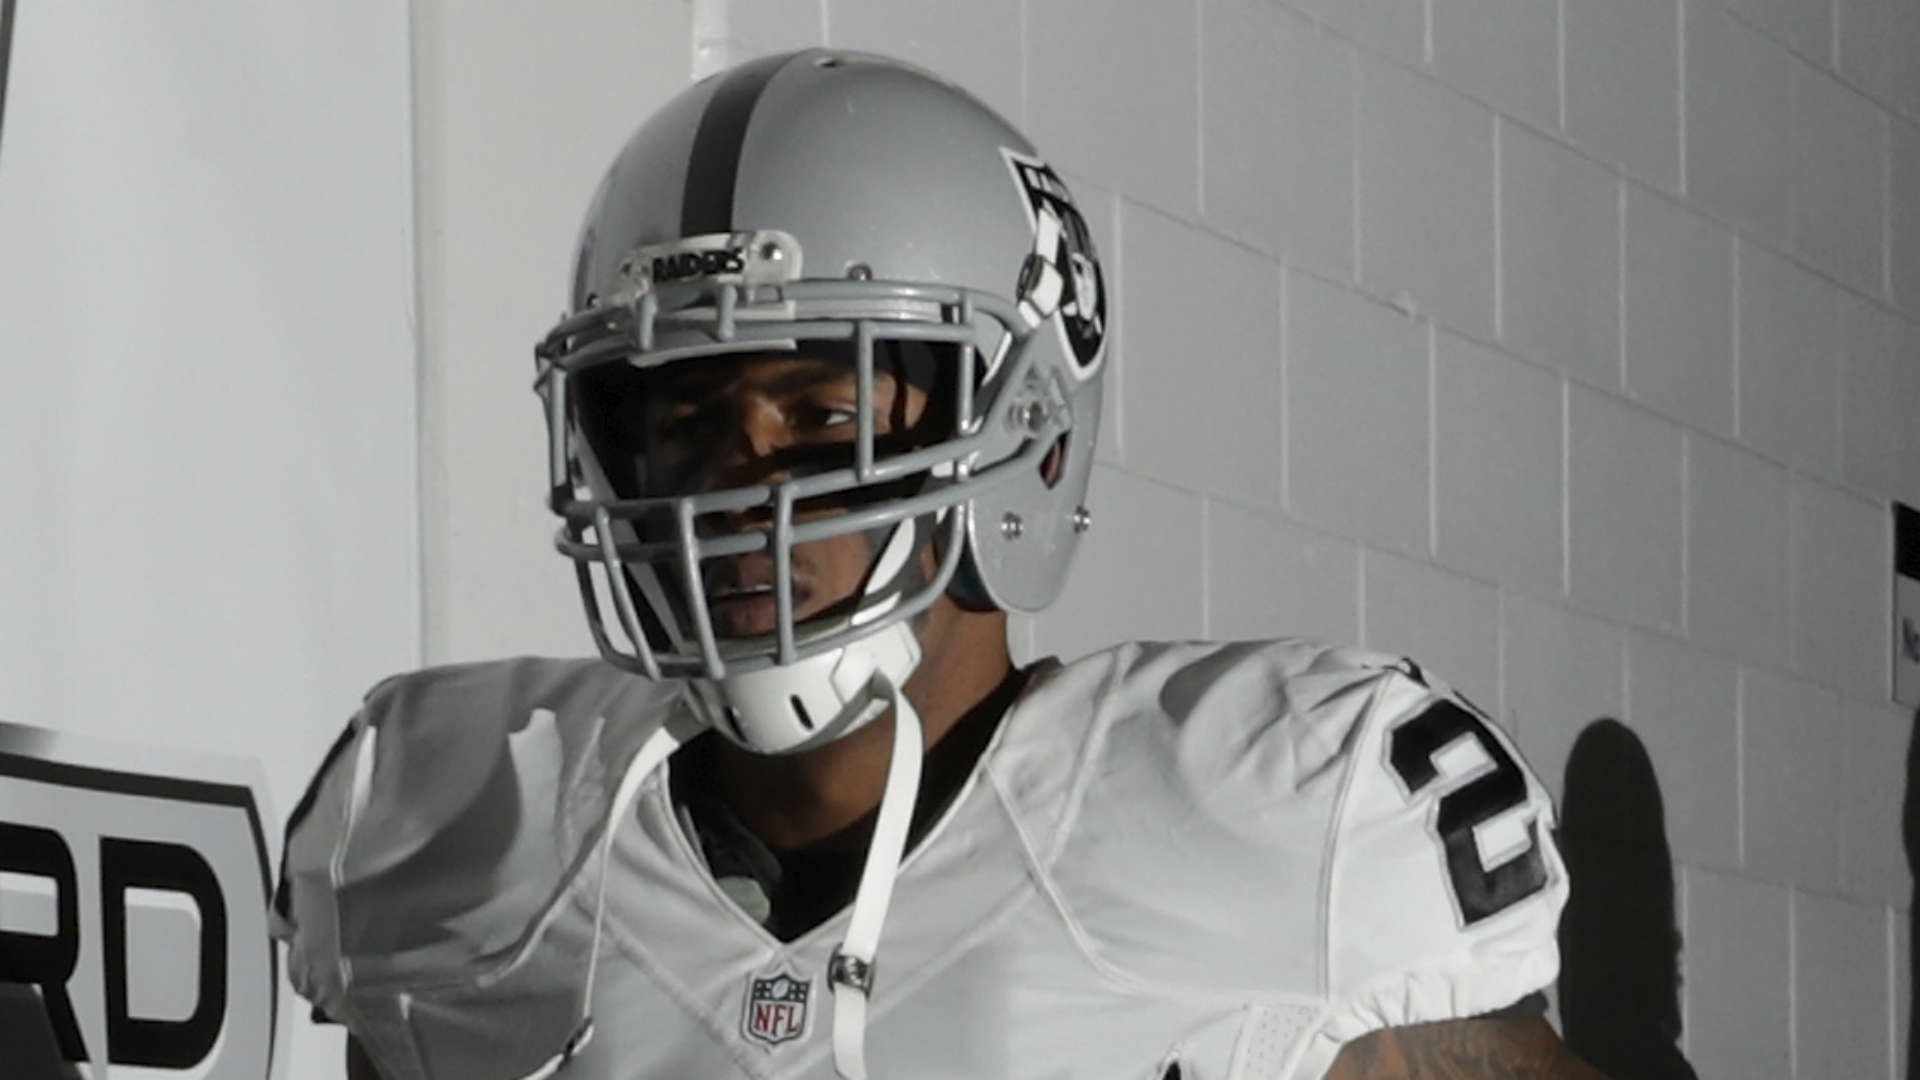 Aldon Smith Pleads Not Guilty to Domestic Violence Charges